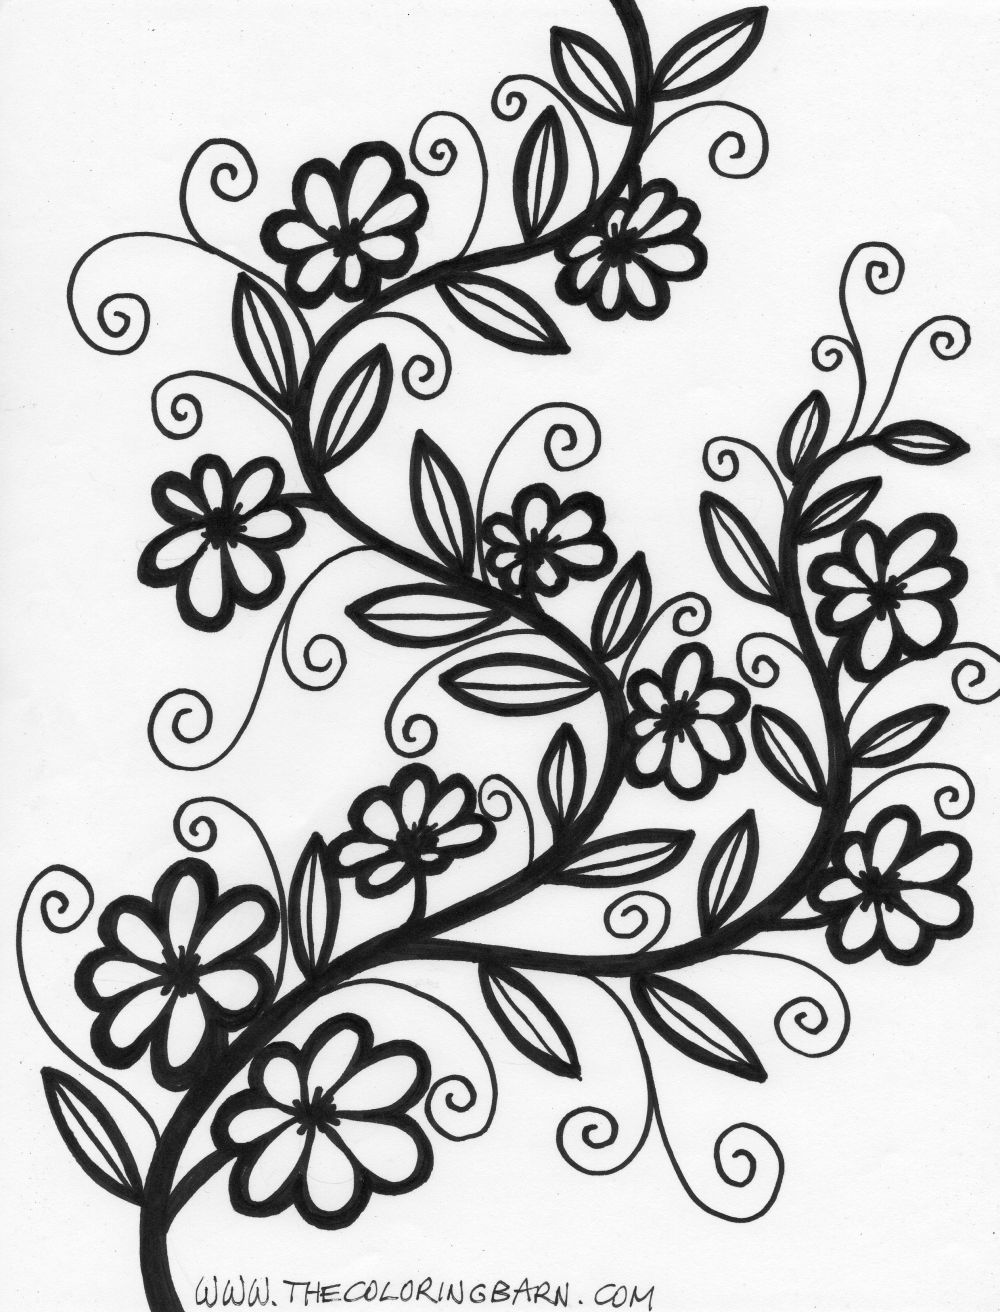 Flower coloring pages for adults more flower coloring pages coloring barn coloring pages you will